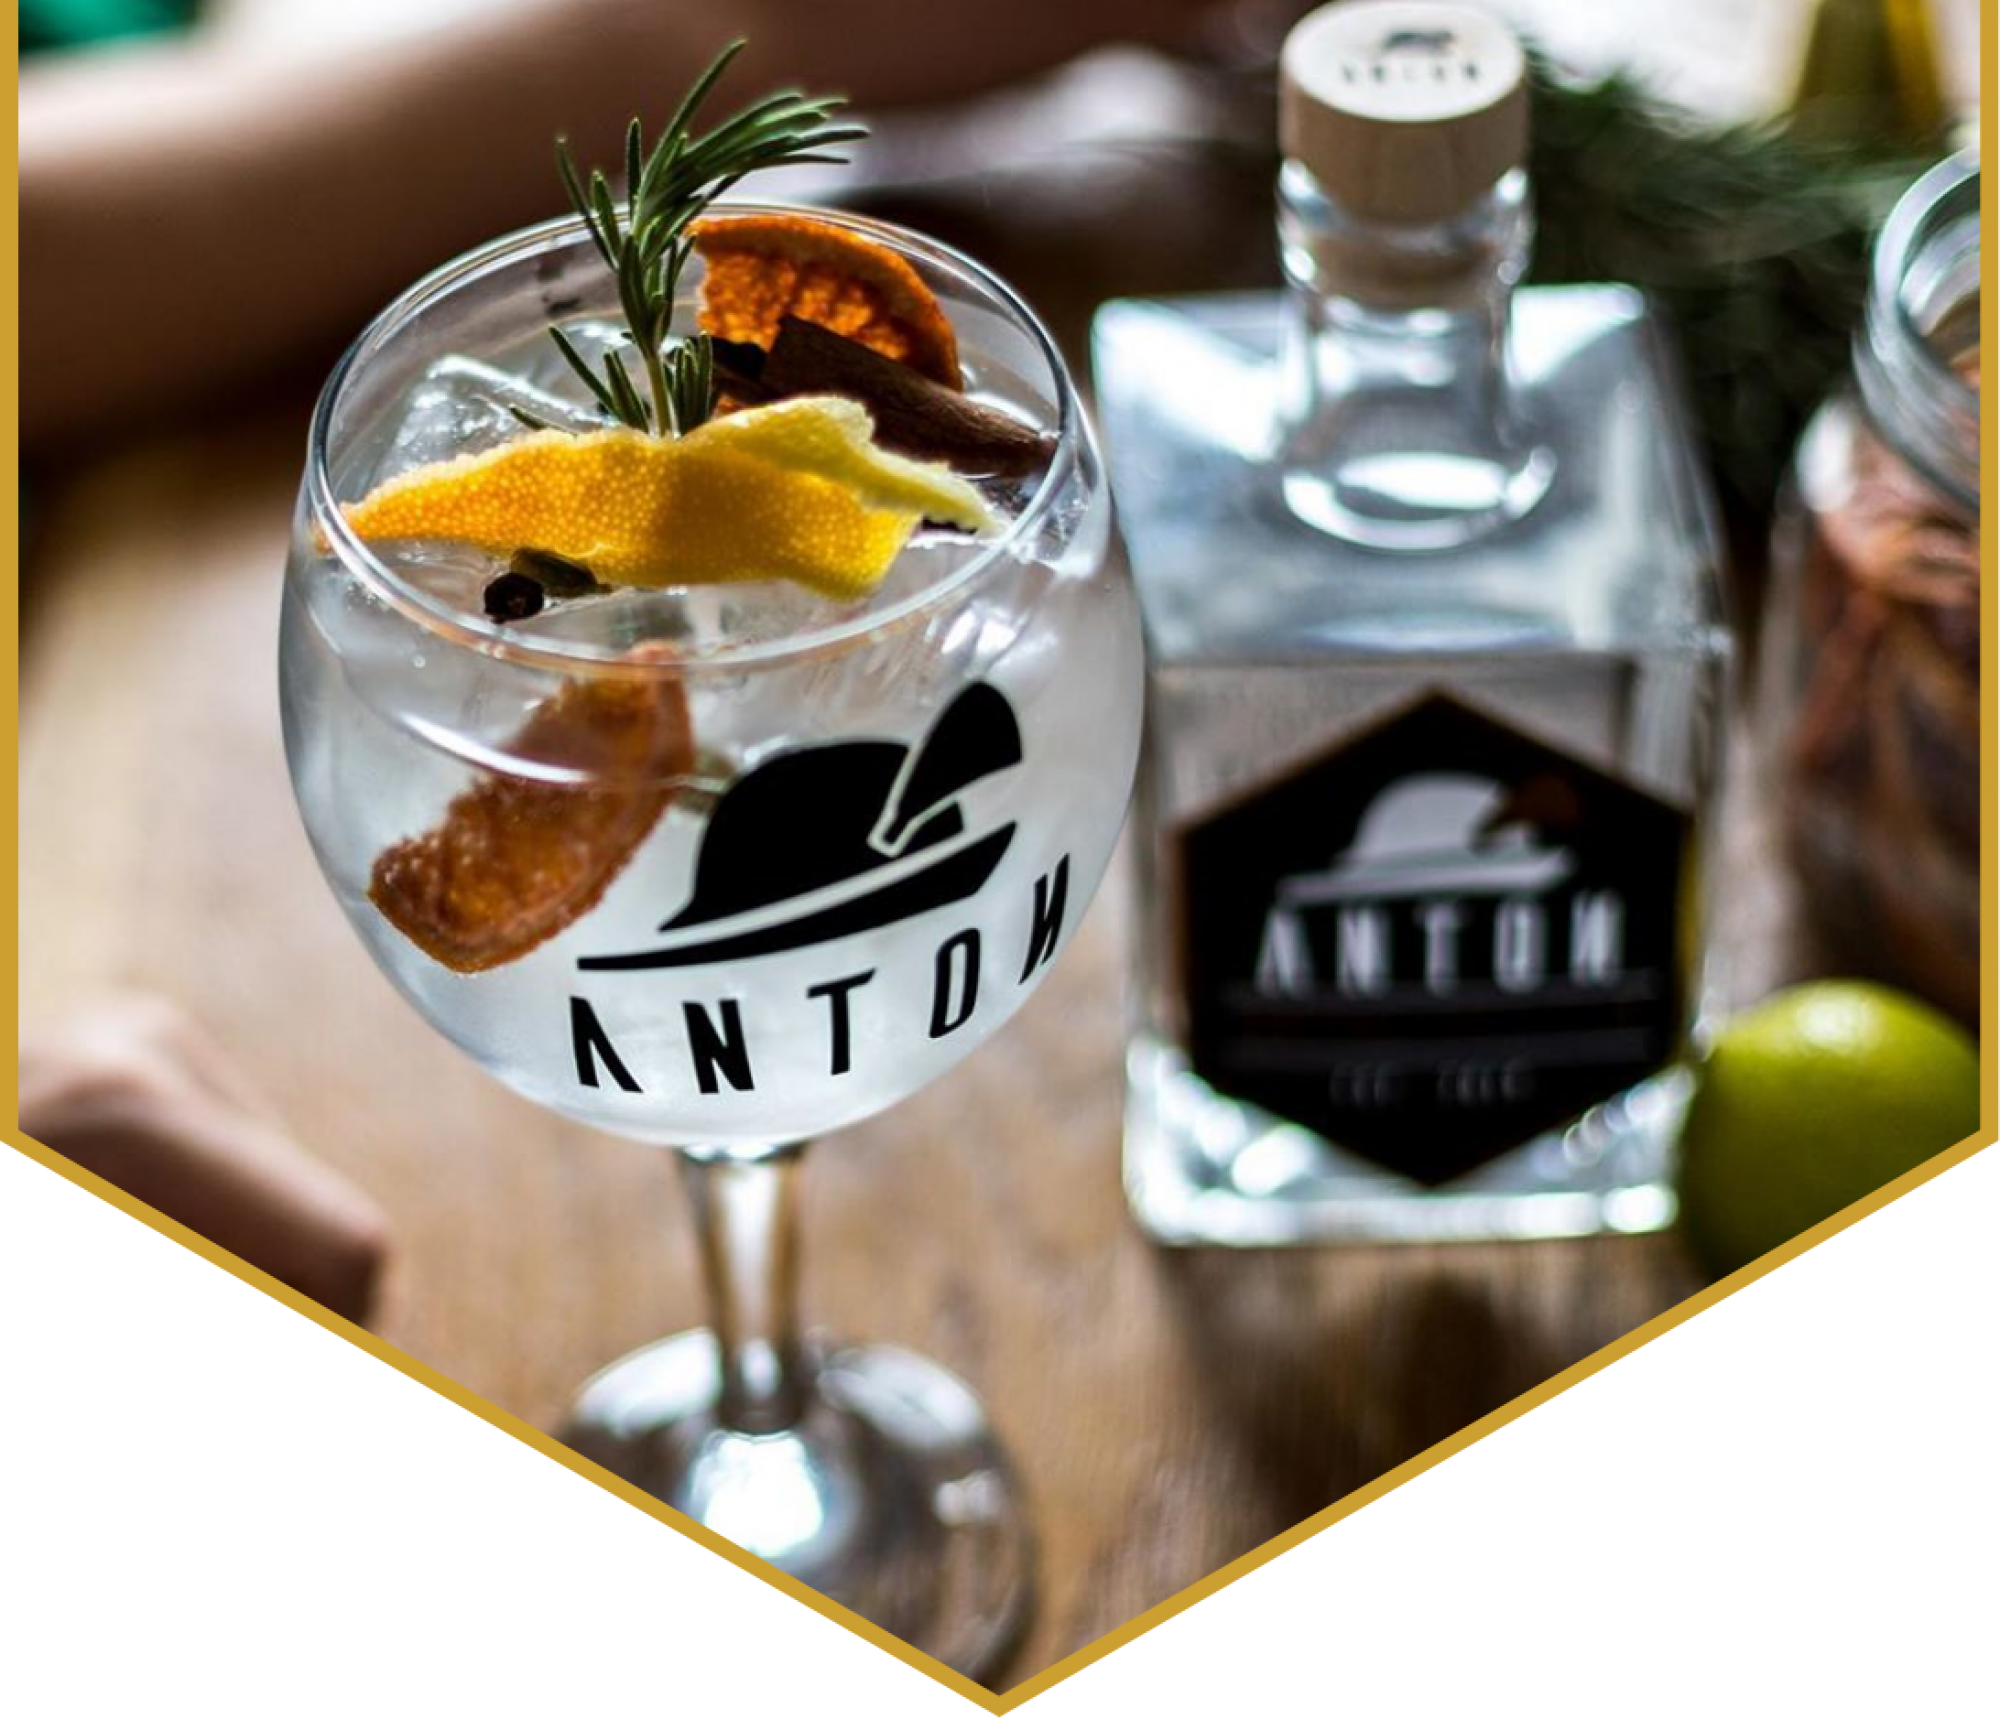 Anton Rottal Dry Gin